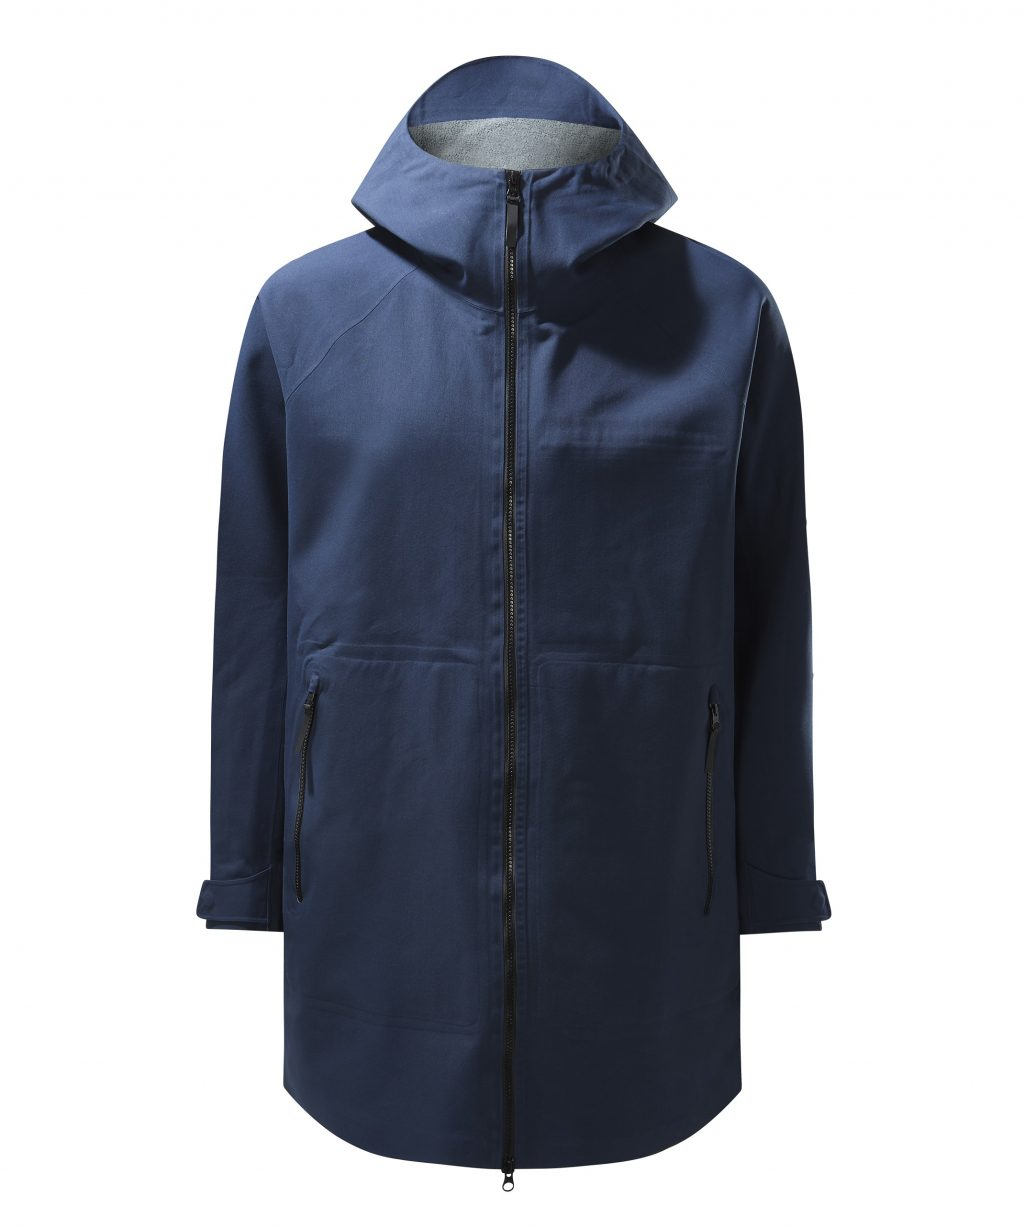 Waterproof XALT The Storm Shell Mens